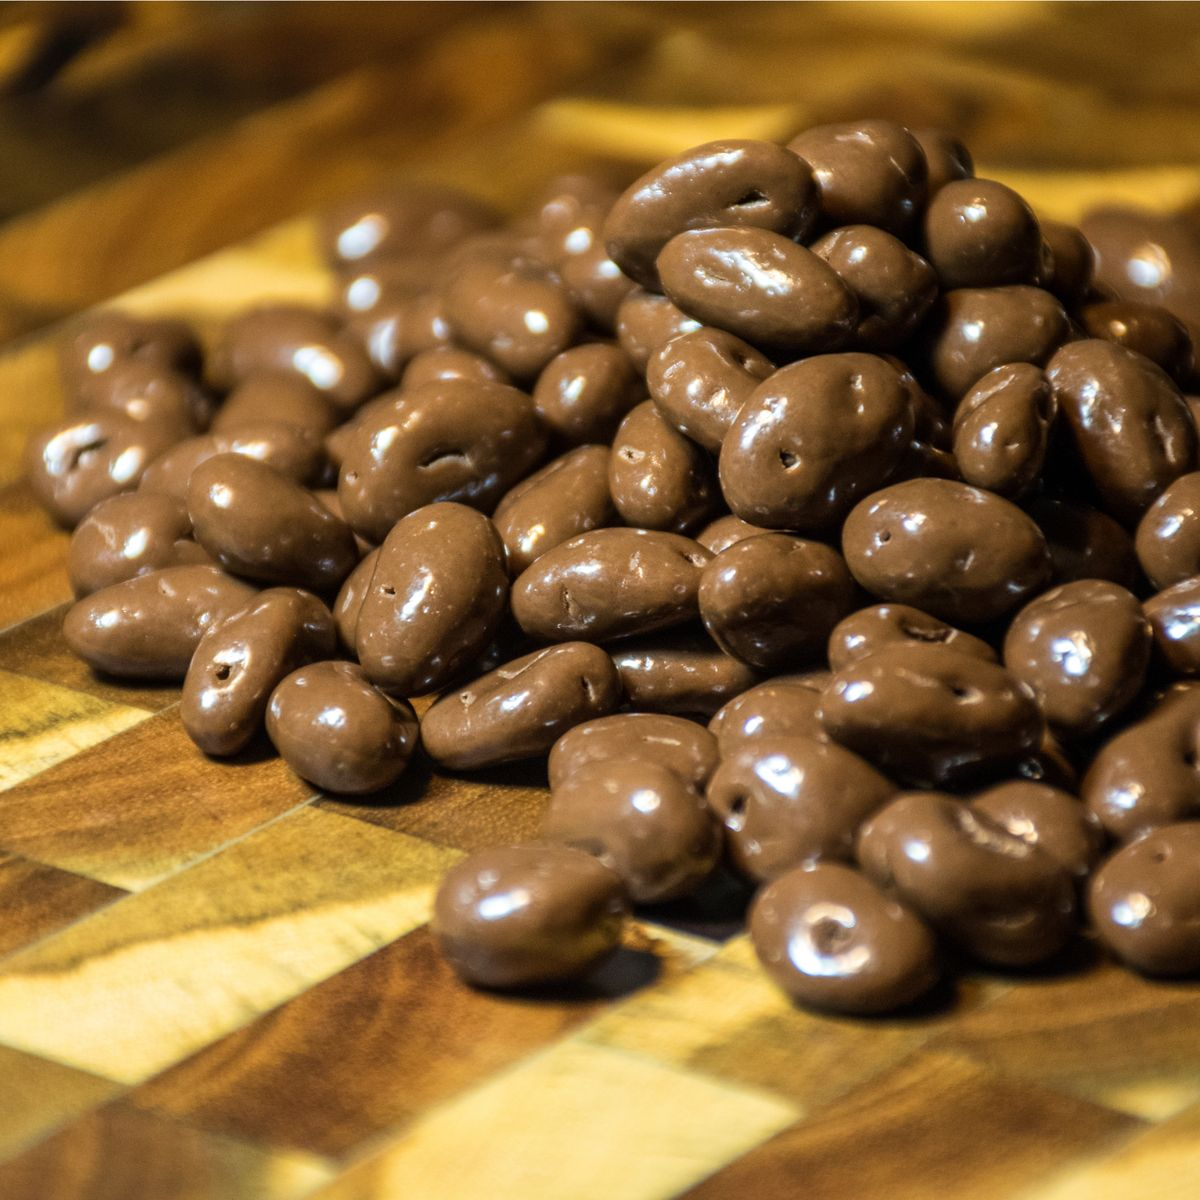 How to Make Chocolate-Covered Espresso Beans